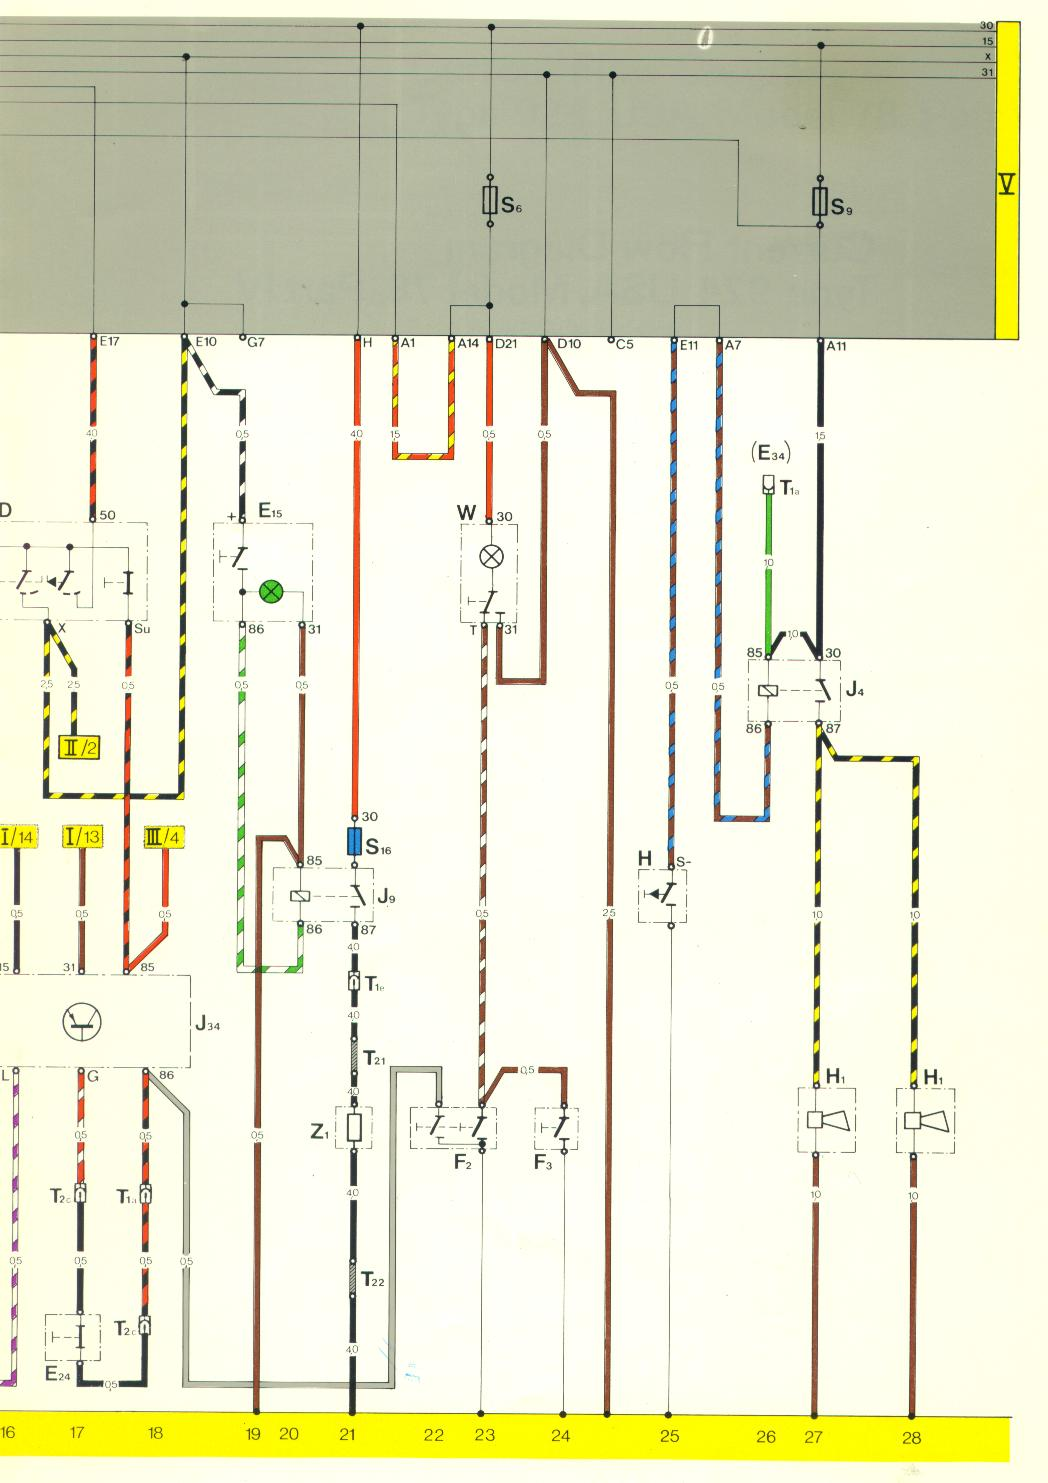 Wiring Diagram For 2008 Pontiac G6.php. Wiring. Wiring ... on